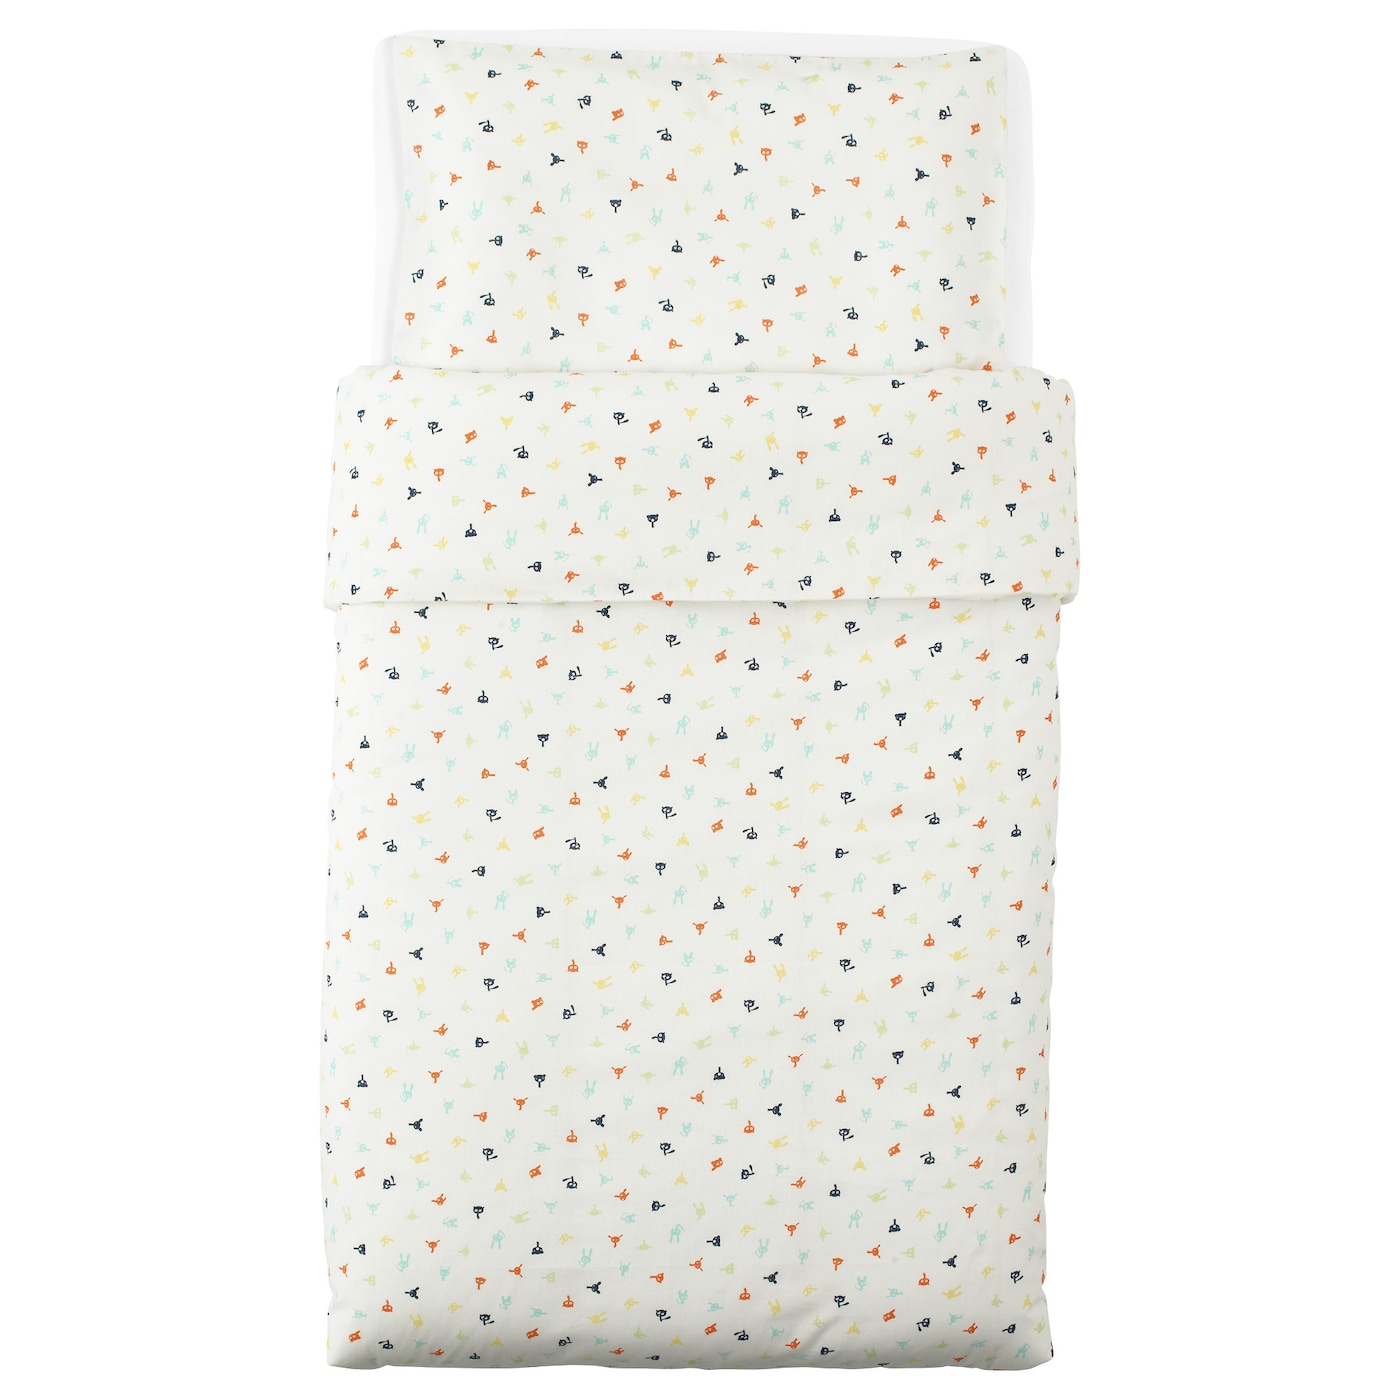 IKEA STJÄRNBILD quilt cover/pillowcase for cot Easy to keep clean; machine wash hot (60°C).